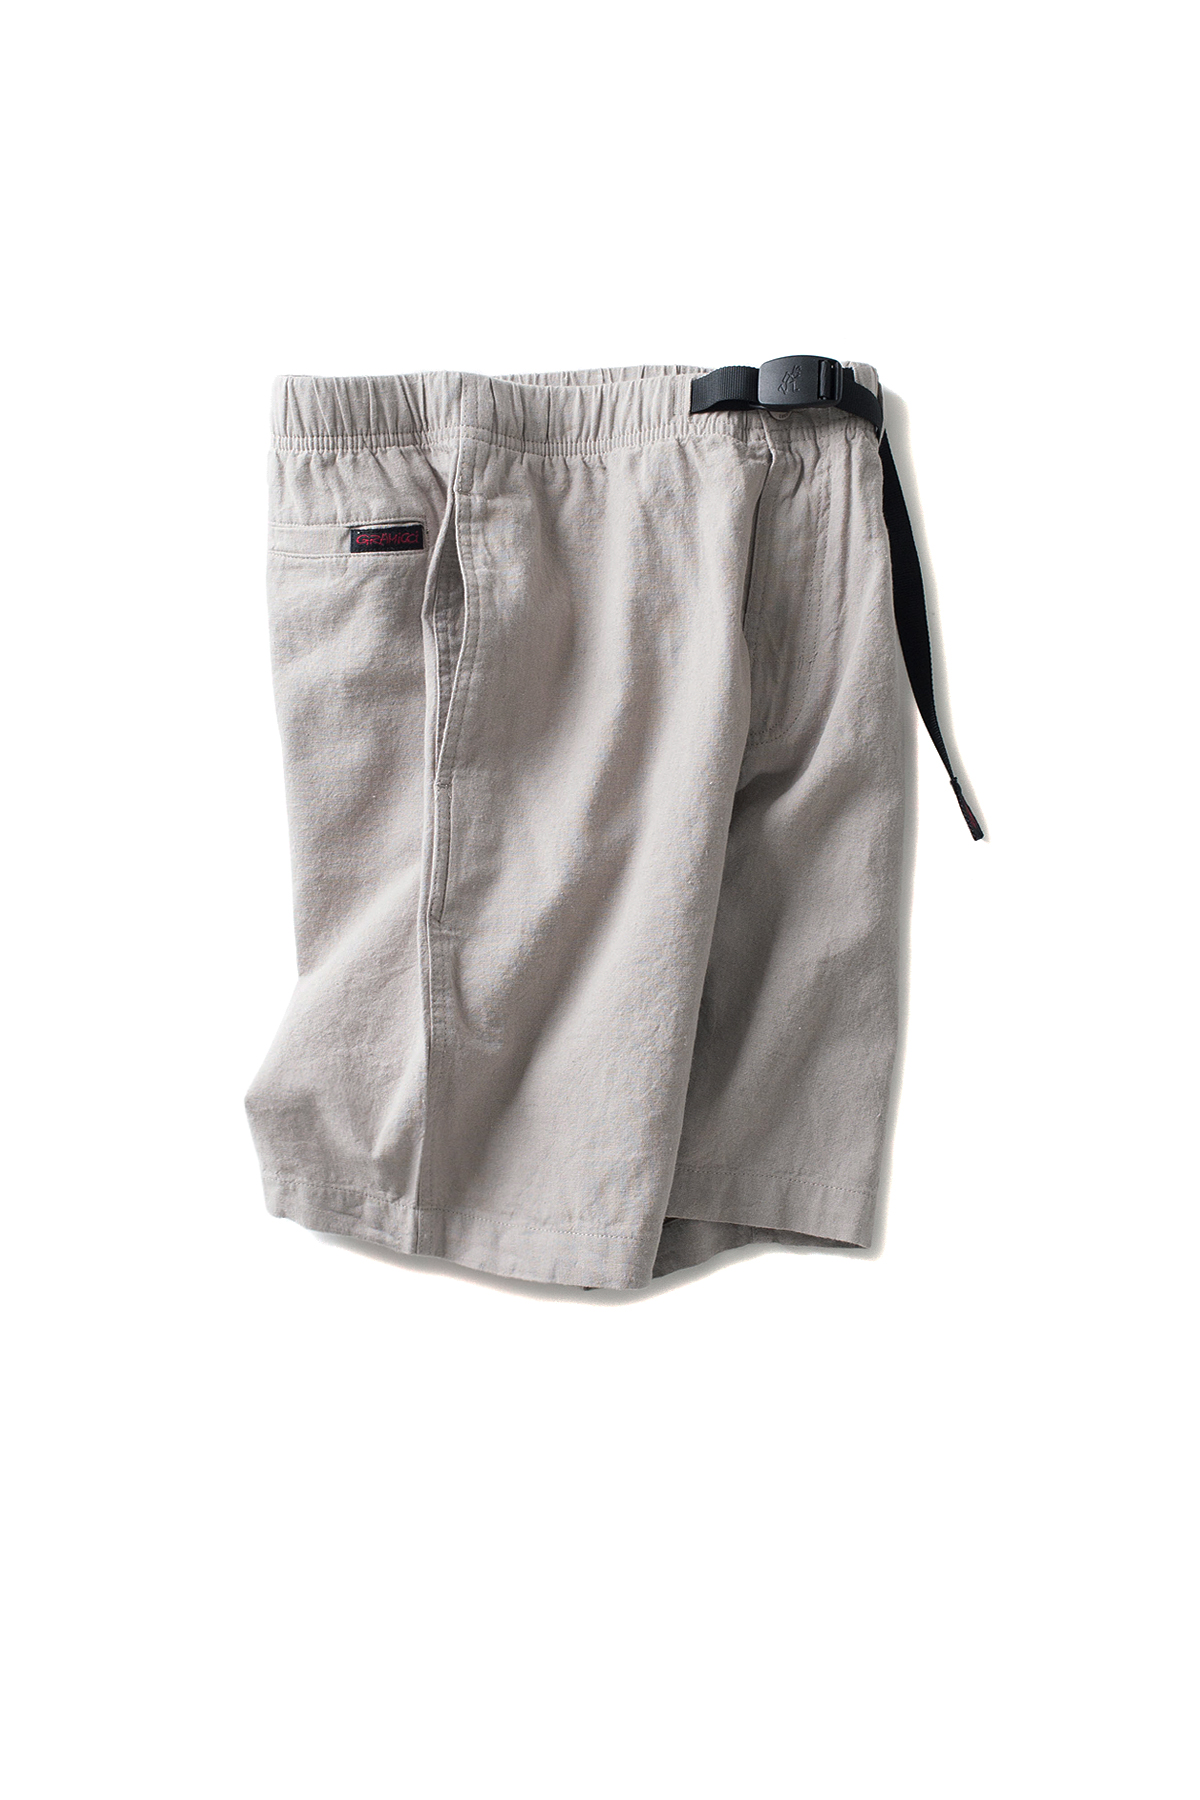 Gramicci : Cotton-Linen Zipper Shorts (Grege)